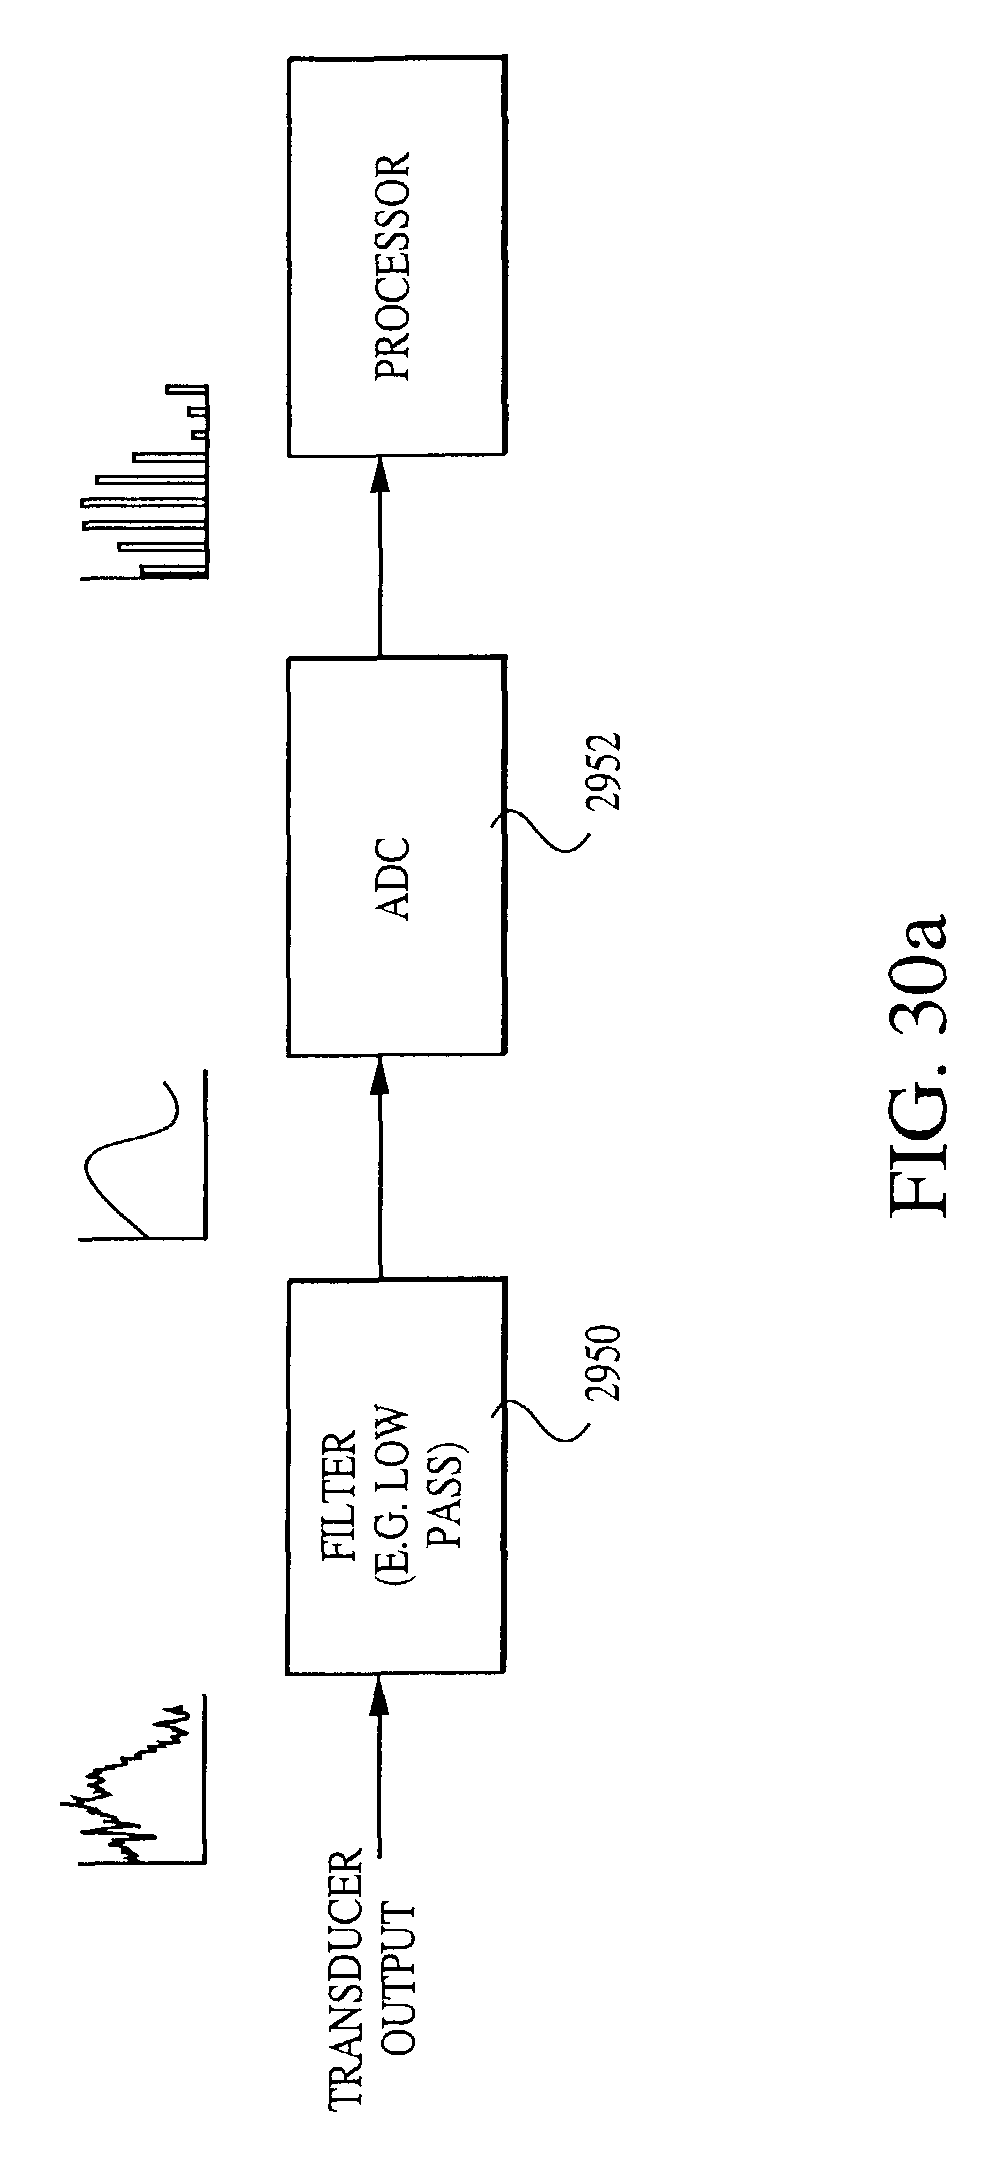 Patent Us 7914442 B1 Likewise Nimh Battery Charger Circuit Diagram On Cell Images